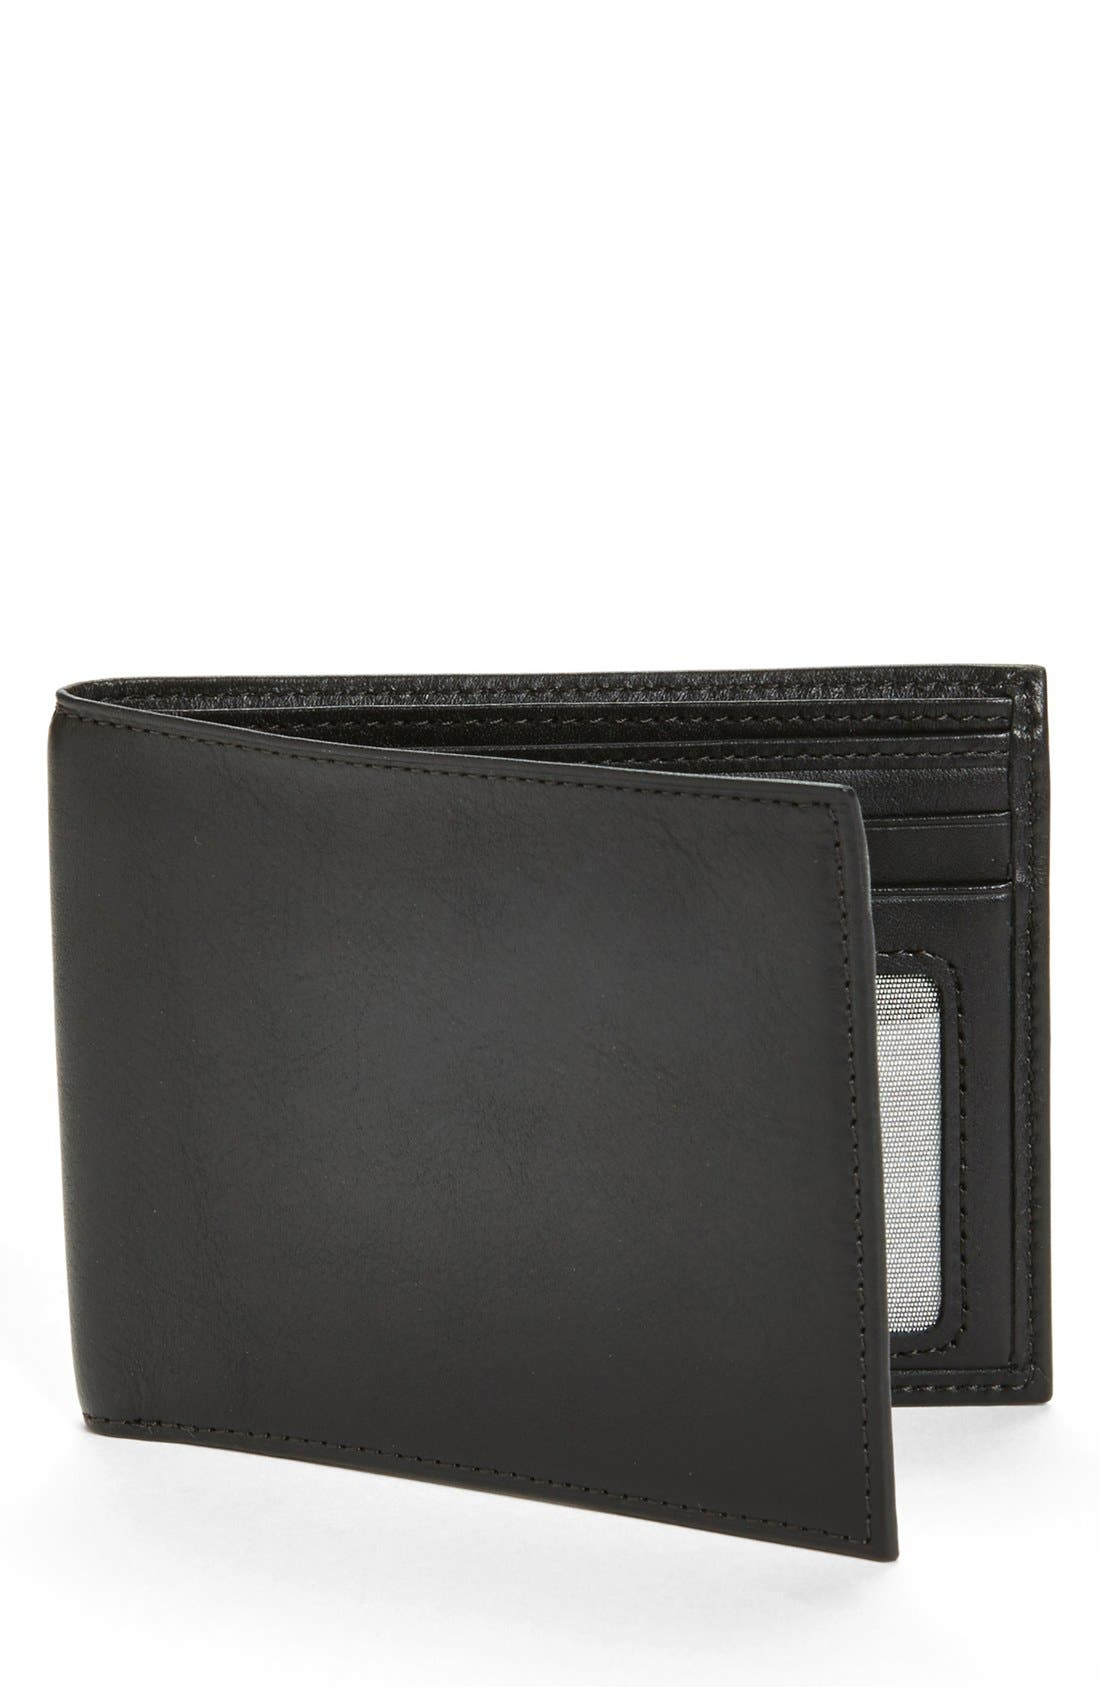 Bosca 'Executive ID' Nappa Leather Wallet